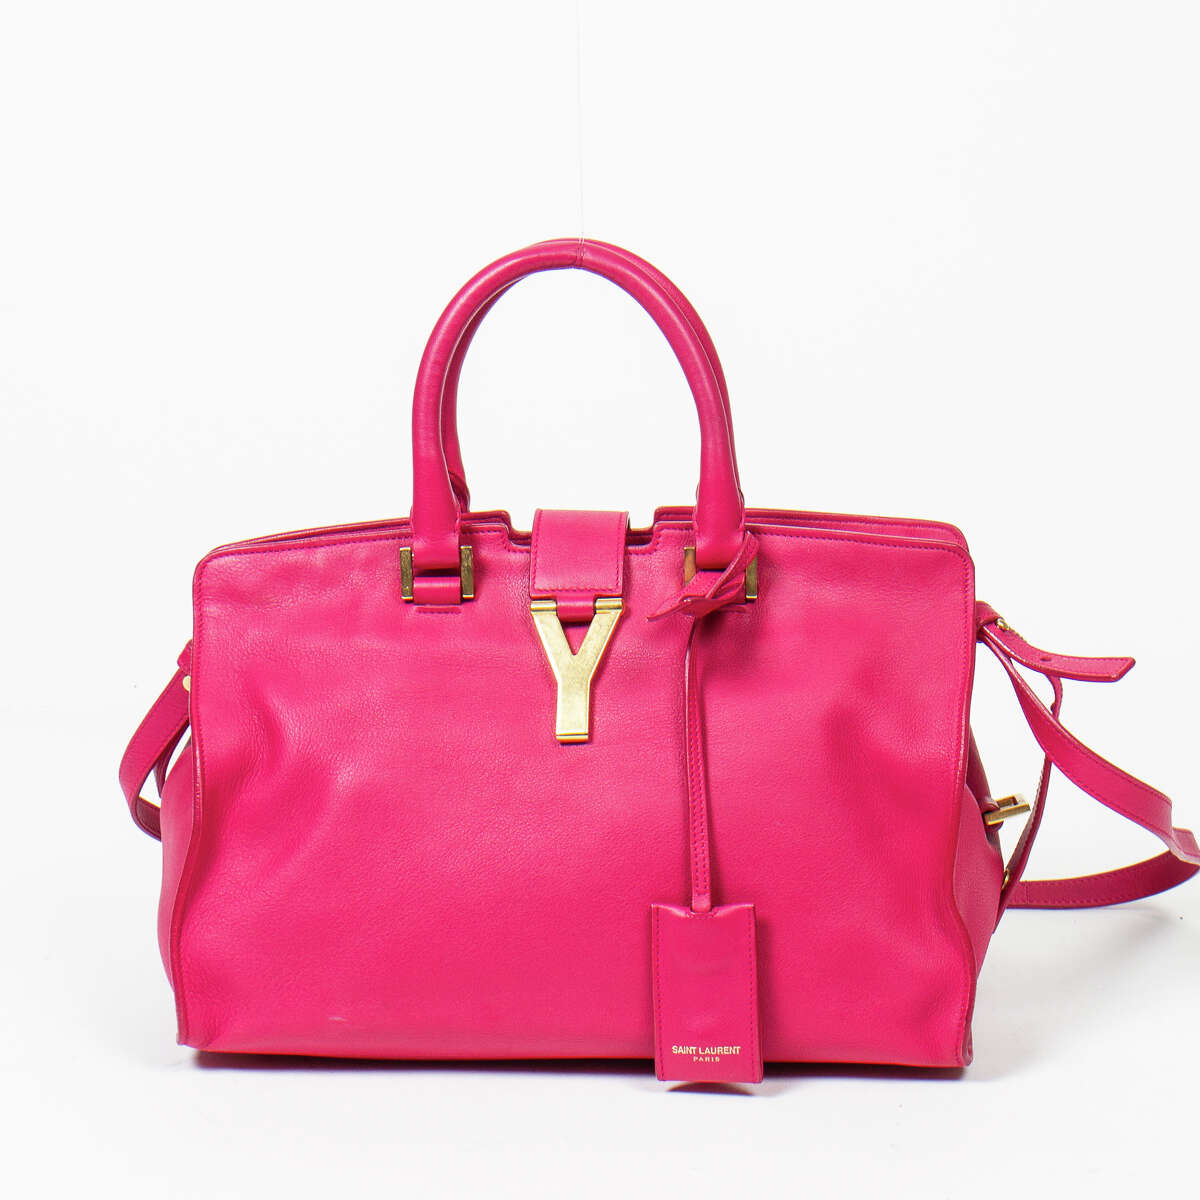 Gallery Auctions will auction 350 luxury handbags and accessories, including this Yves St-Laurent Cabas chyc bag.